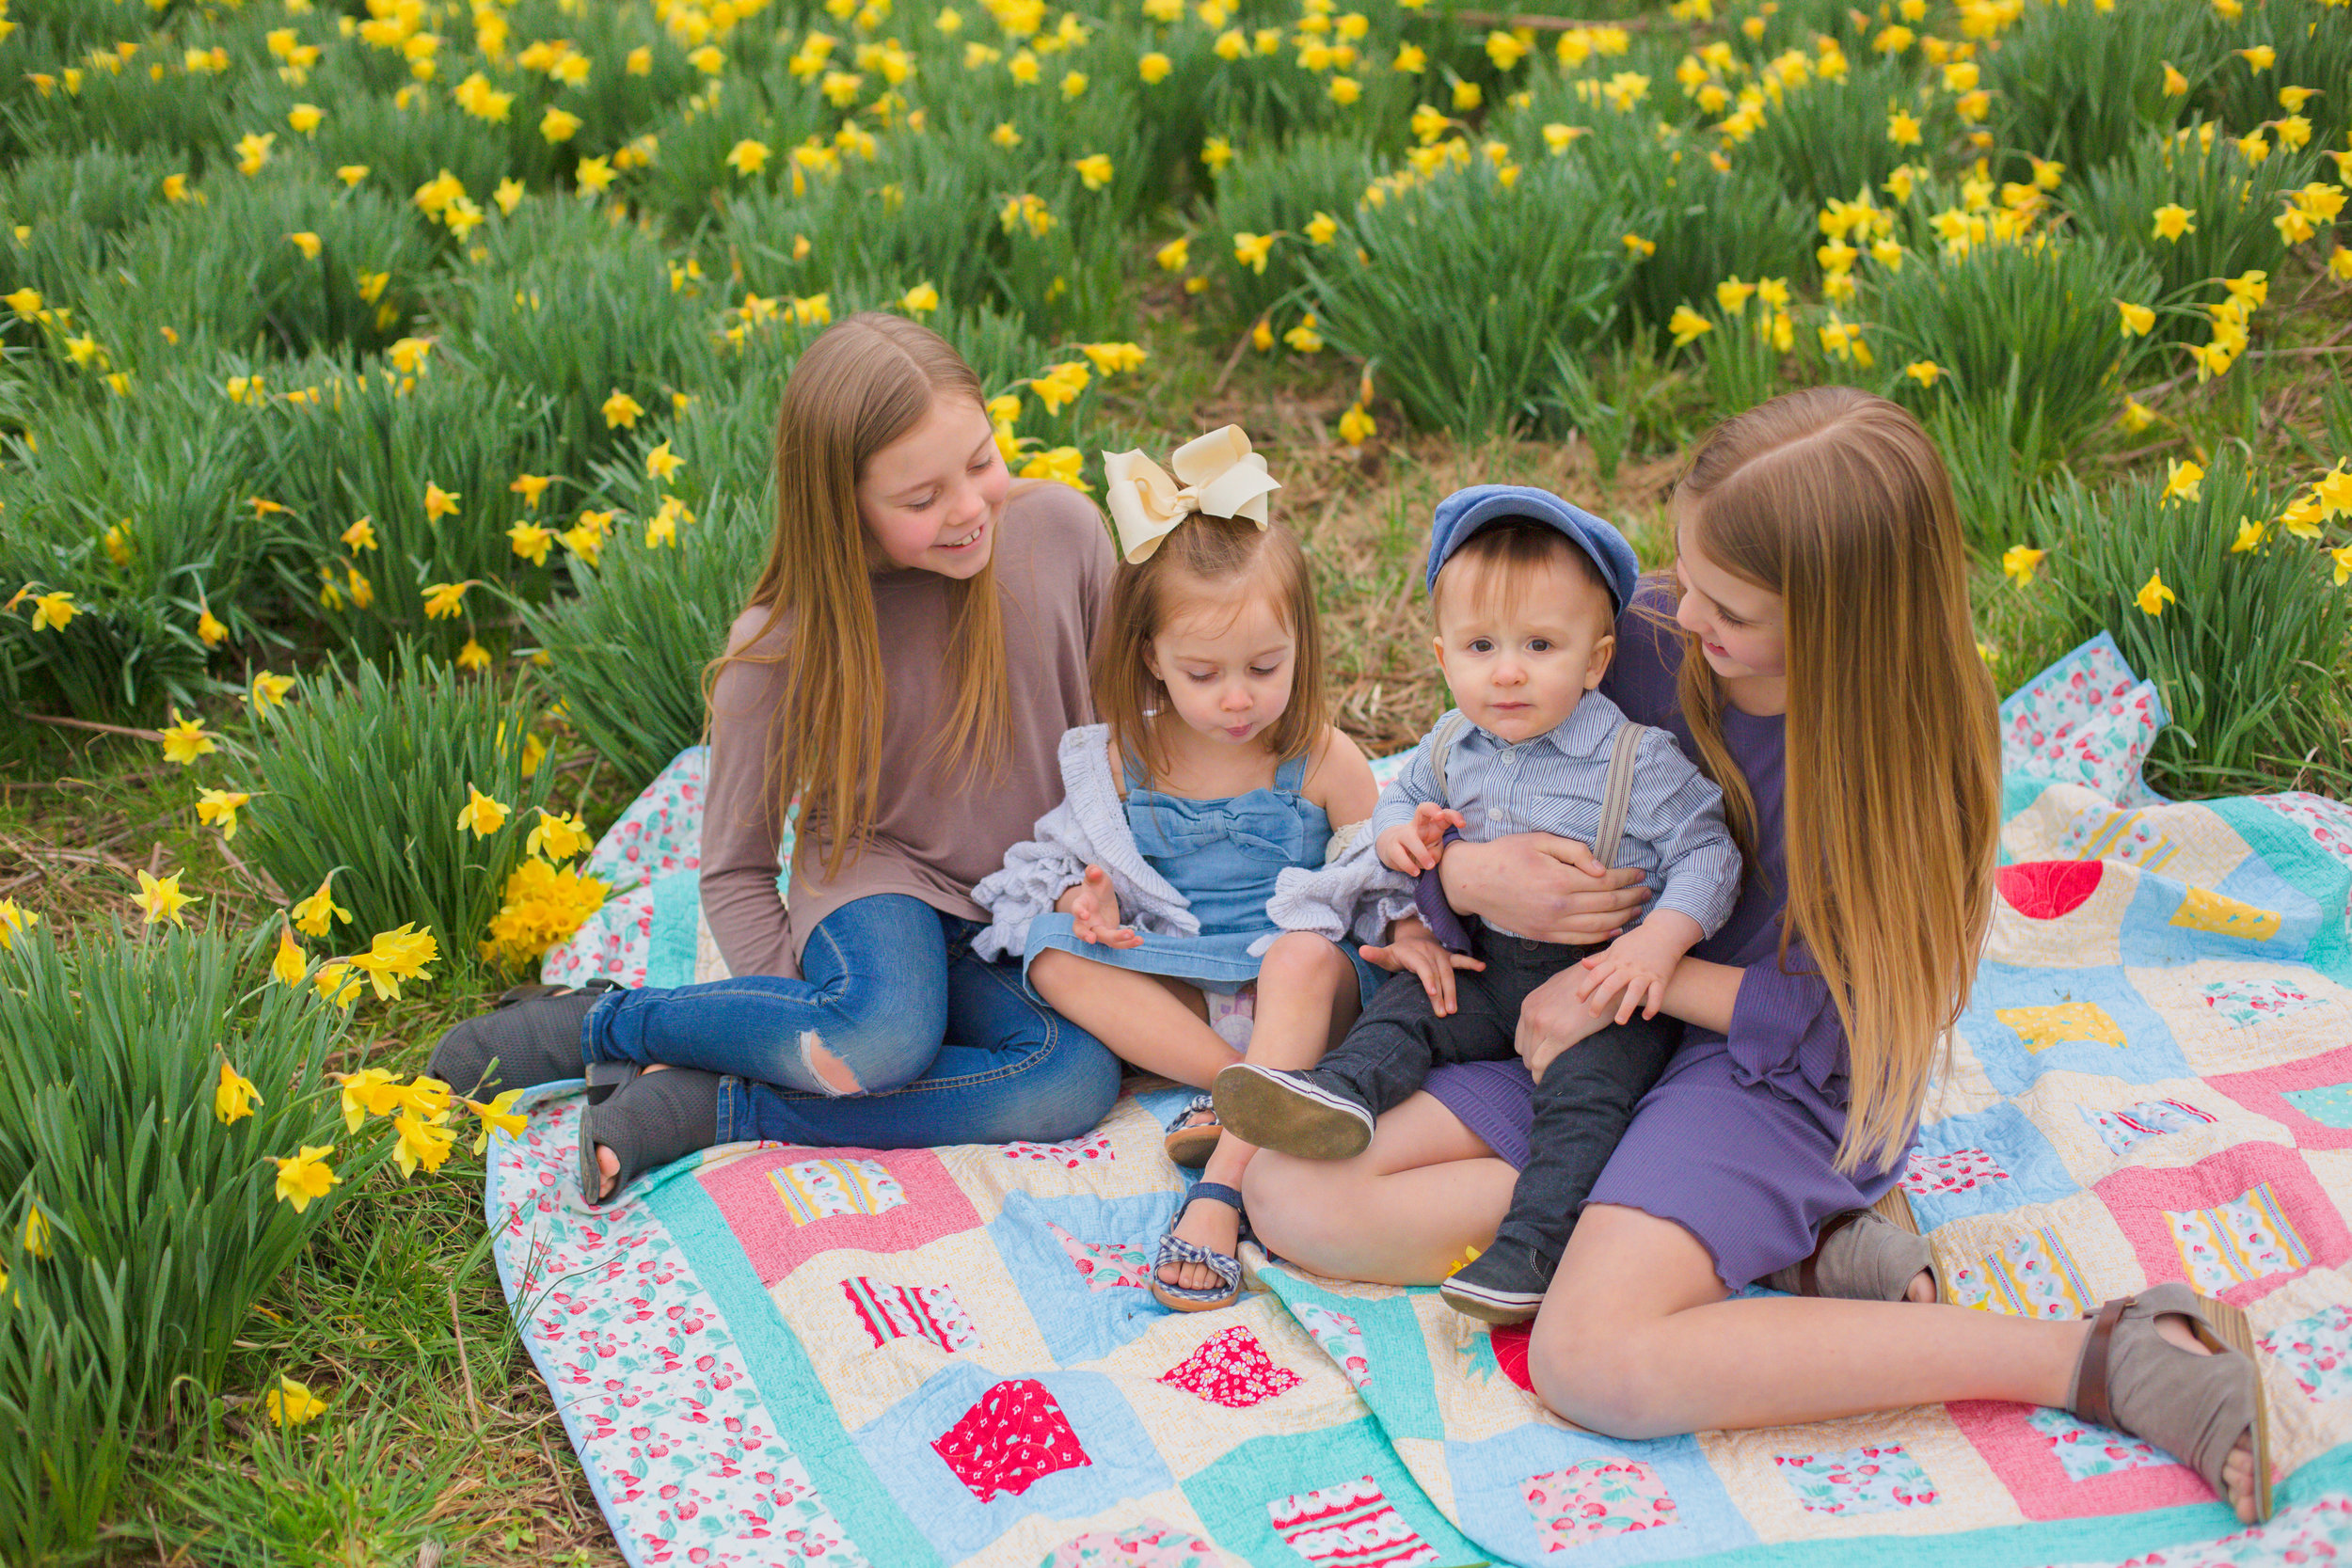 Gann Family Spring Session - Nashville Family Photographer - Chelsea Meadows Photography (46).jpg